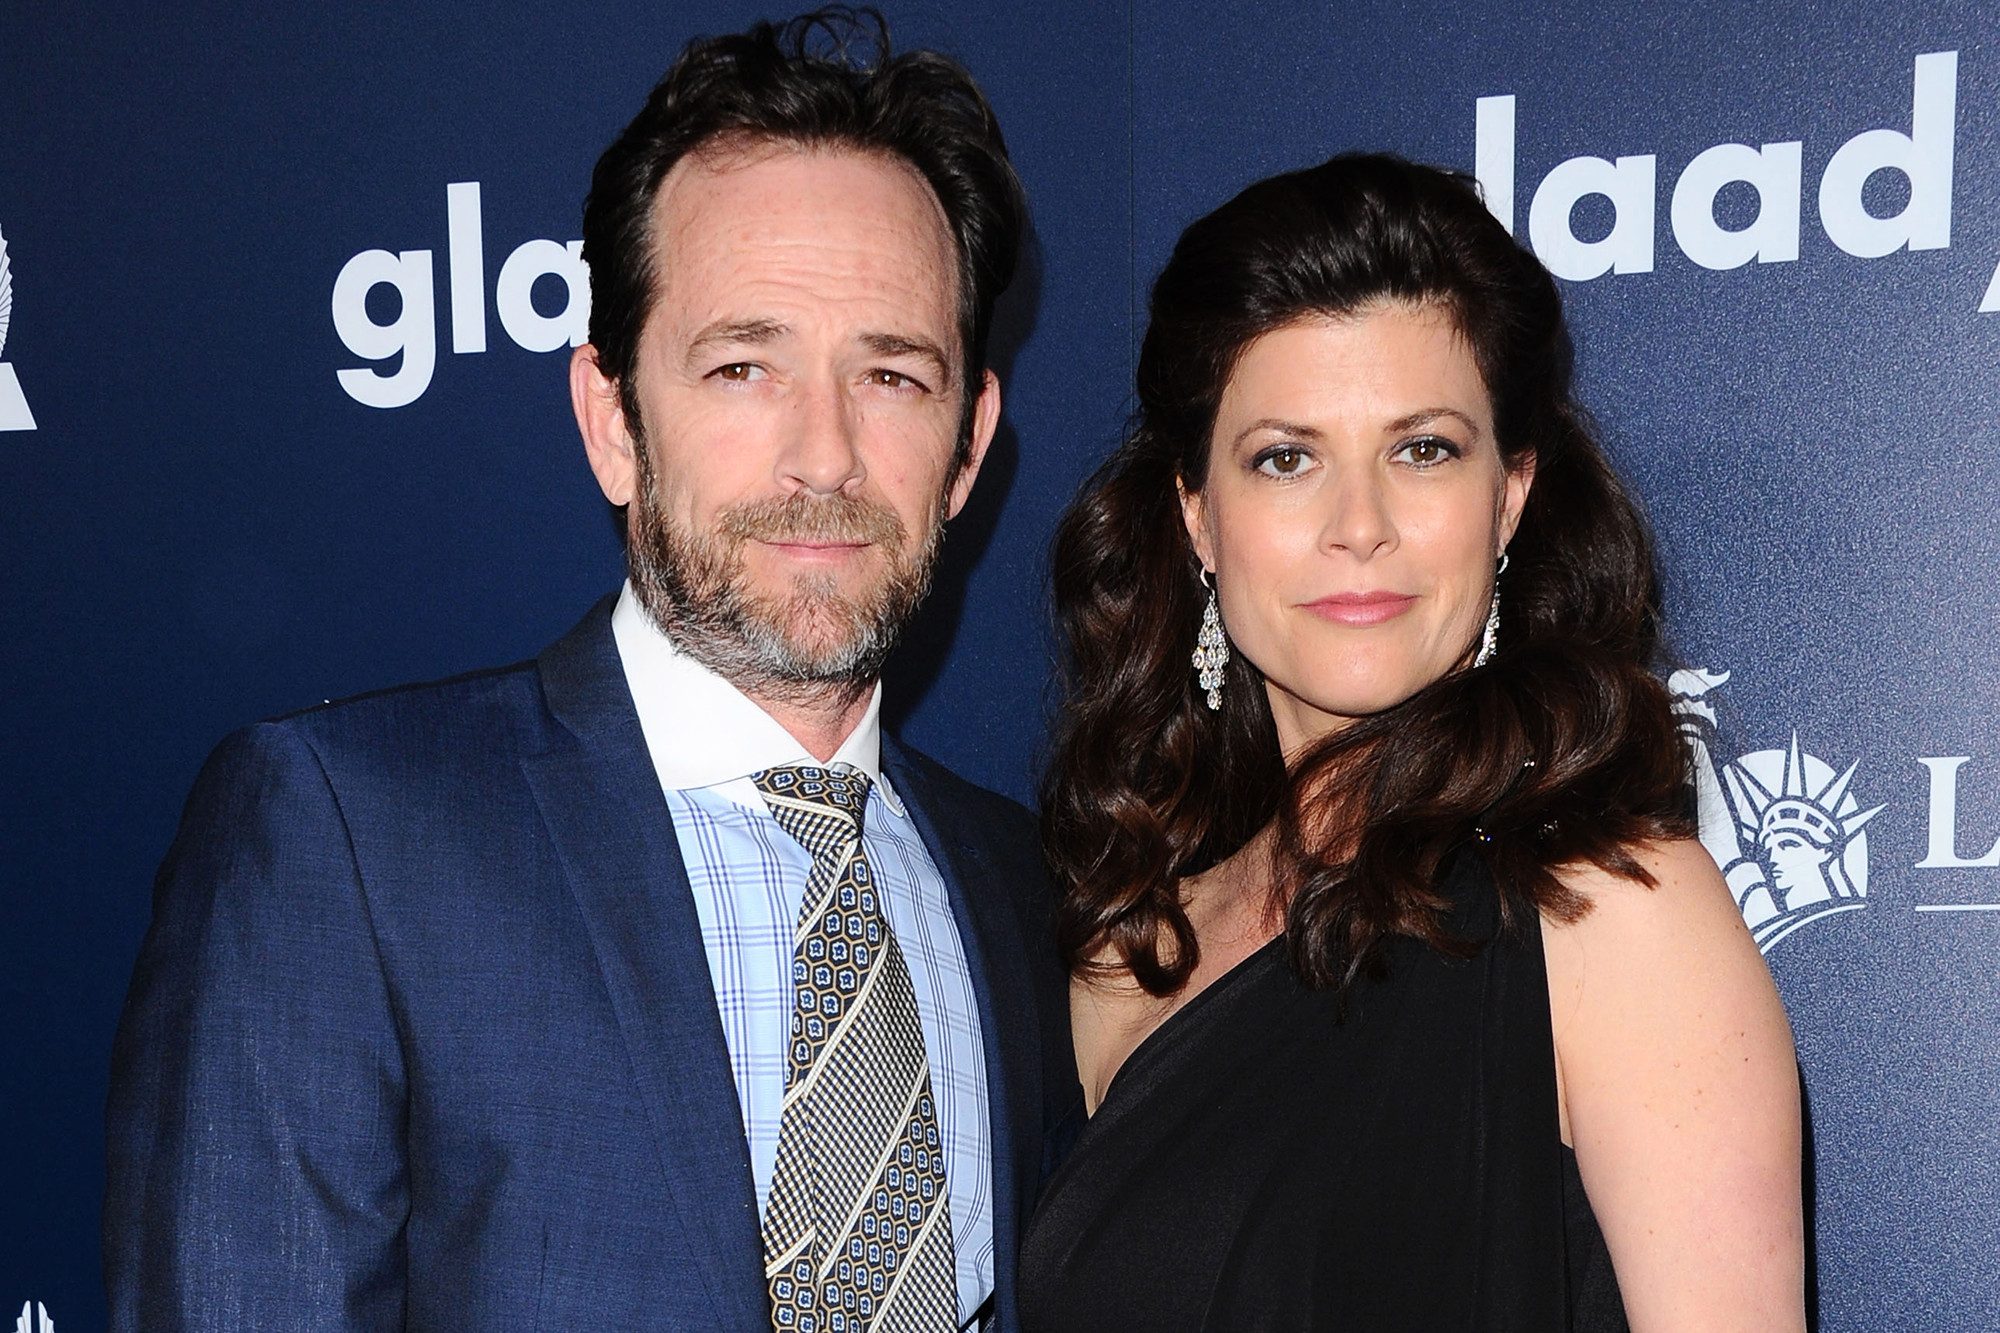 Luke Perry and Wendy Madison Bauer (GLAAD facebook)